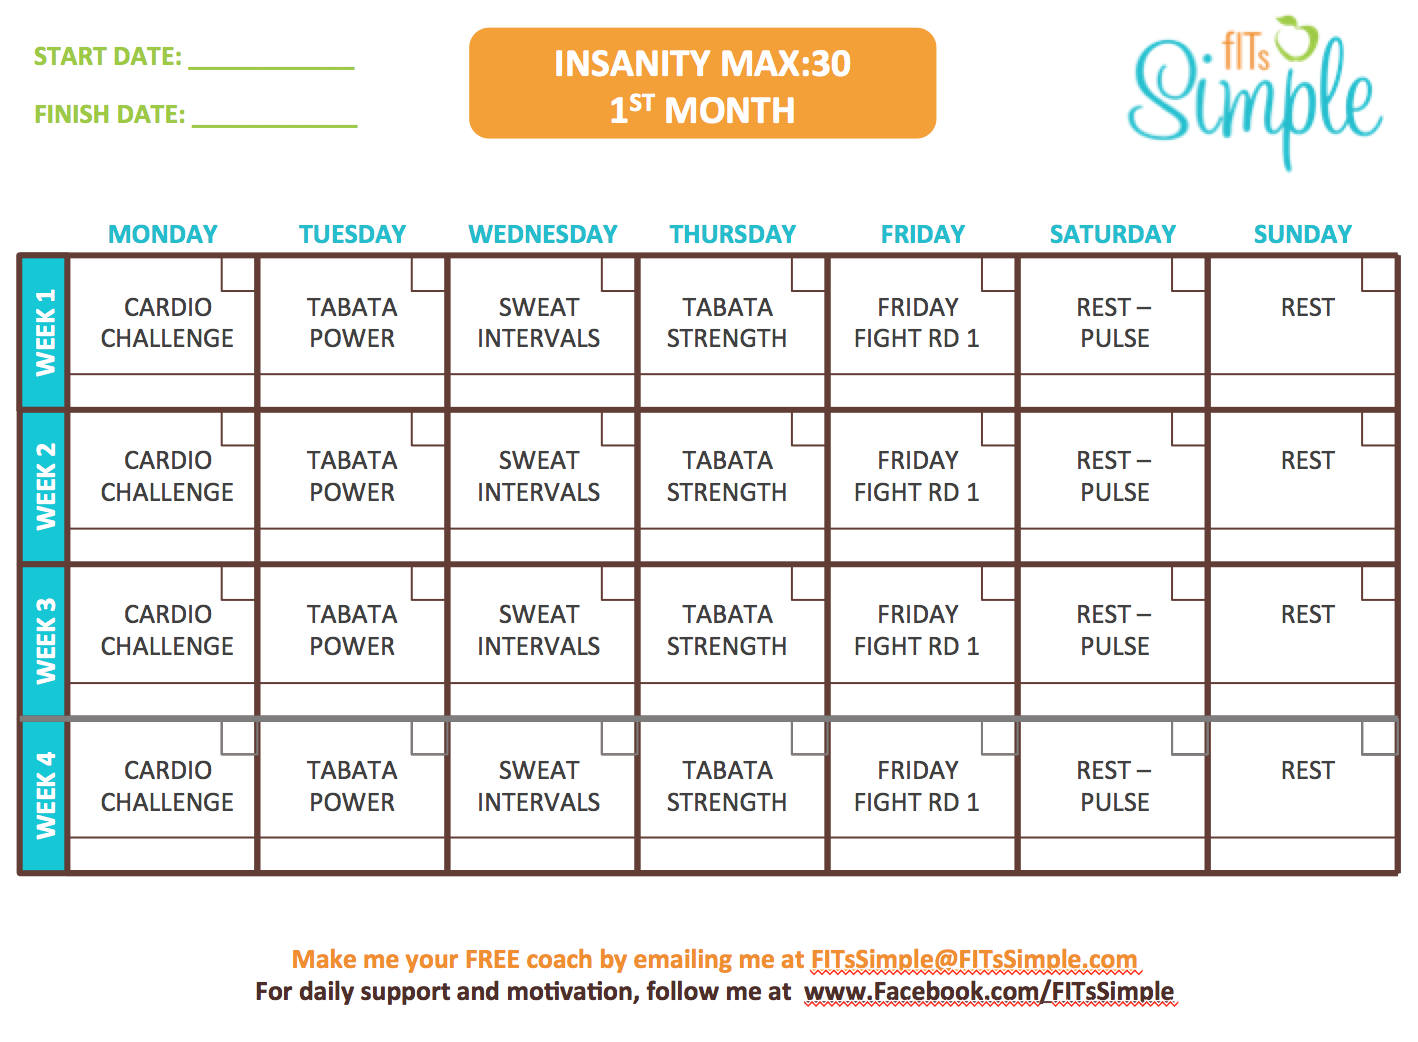 shaun t insanity workout free download torrent